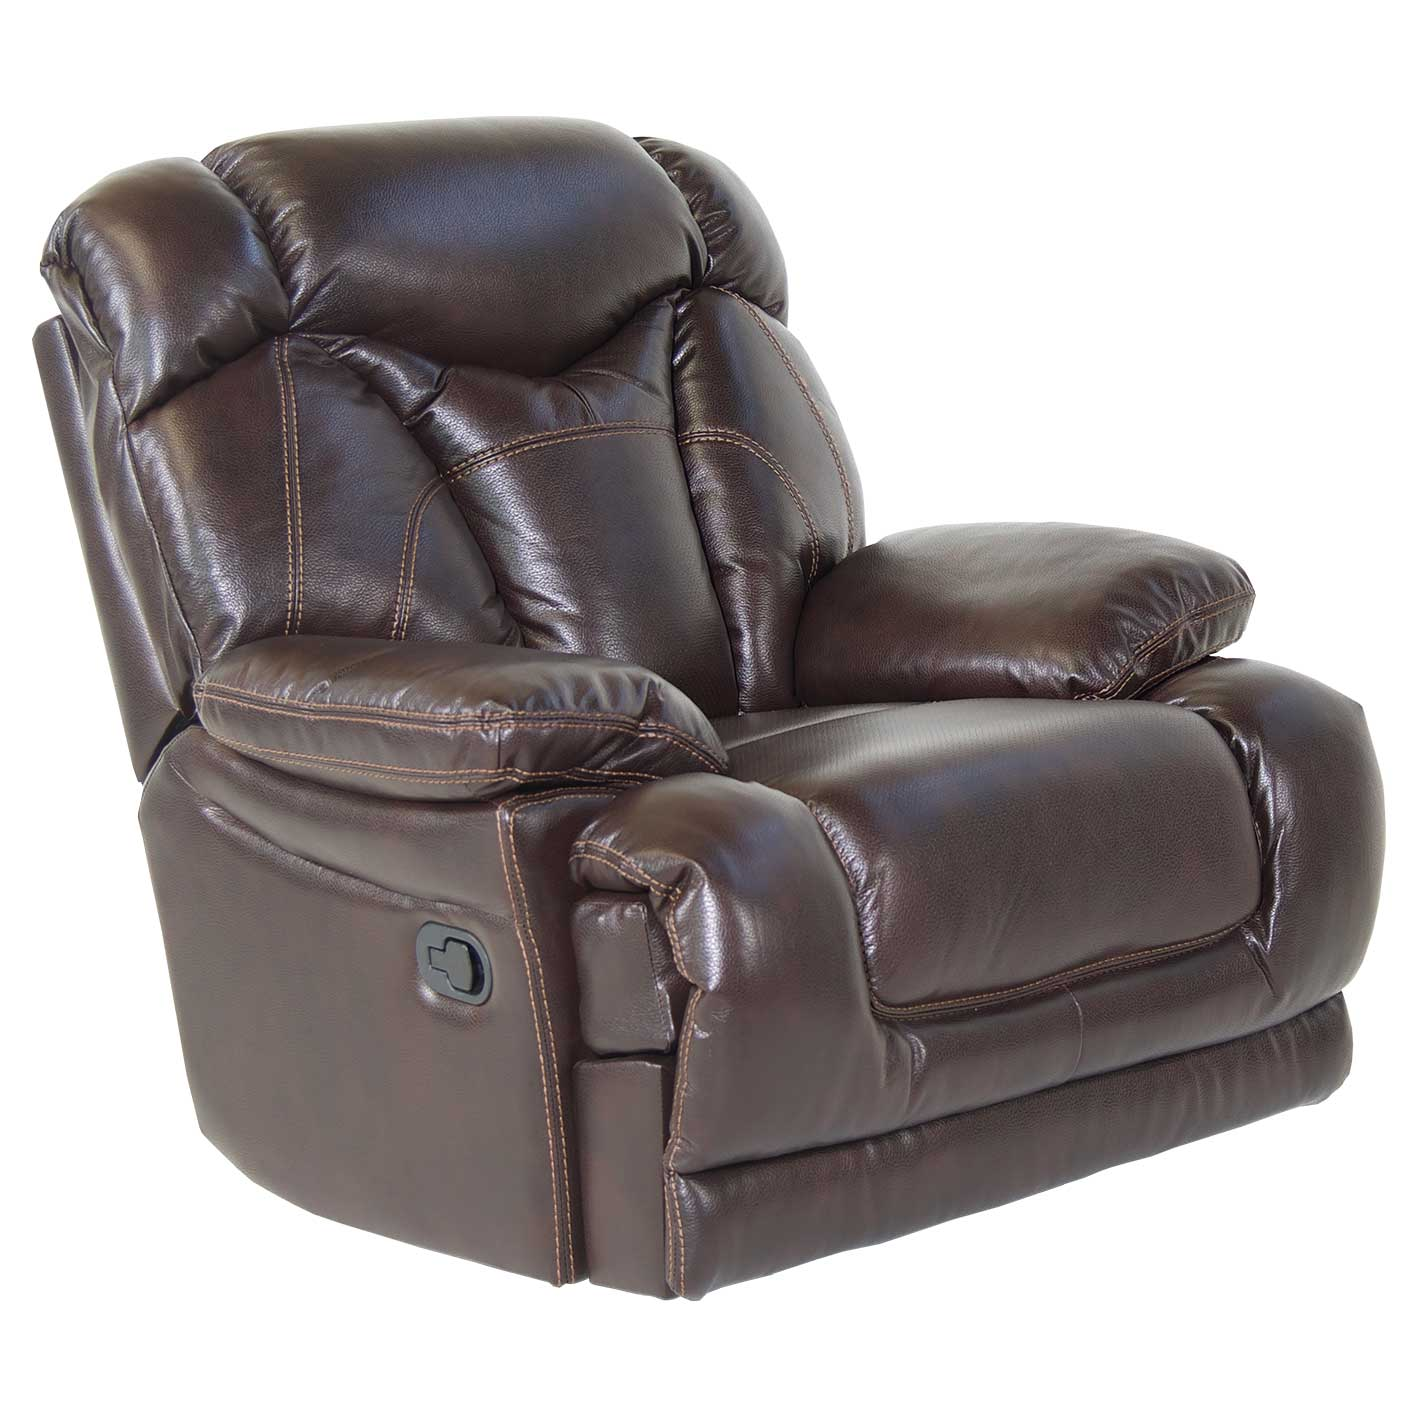 Recliner Lounge Zhej02 Recliner Lounge Suite Recliners For Sale Lounge